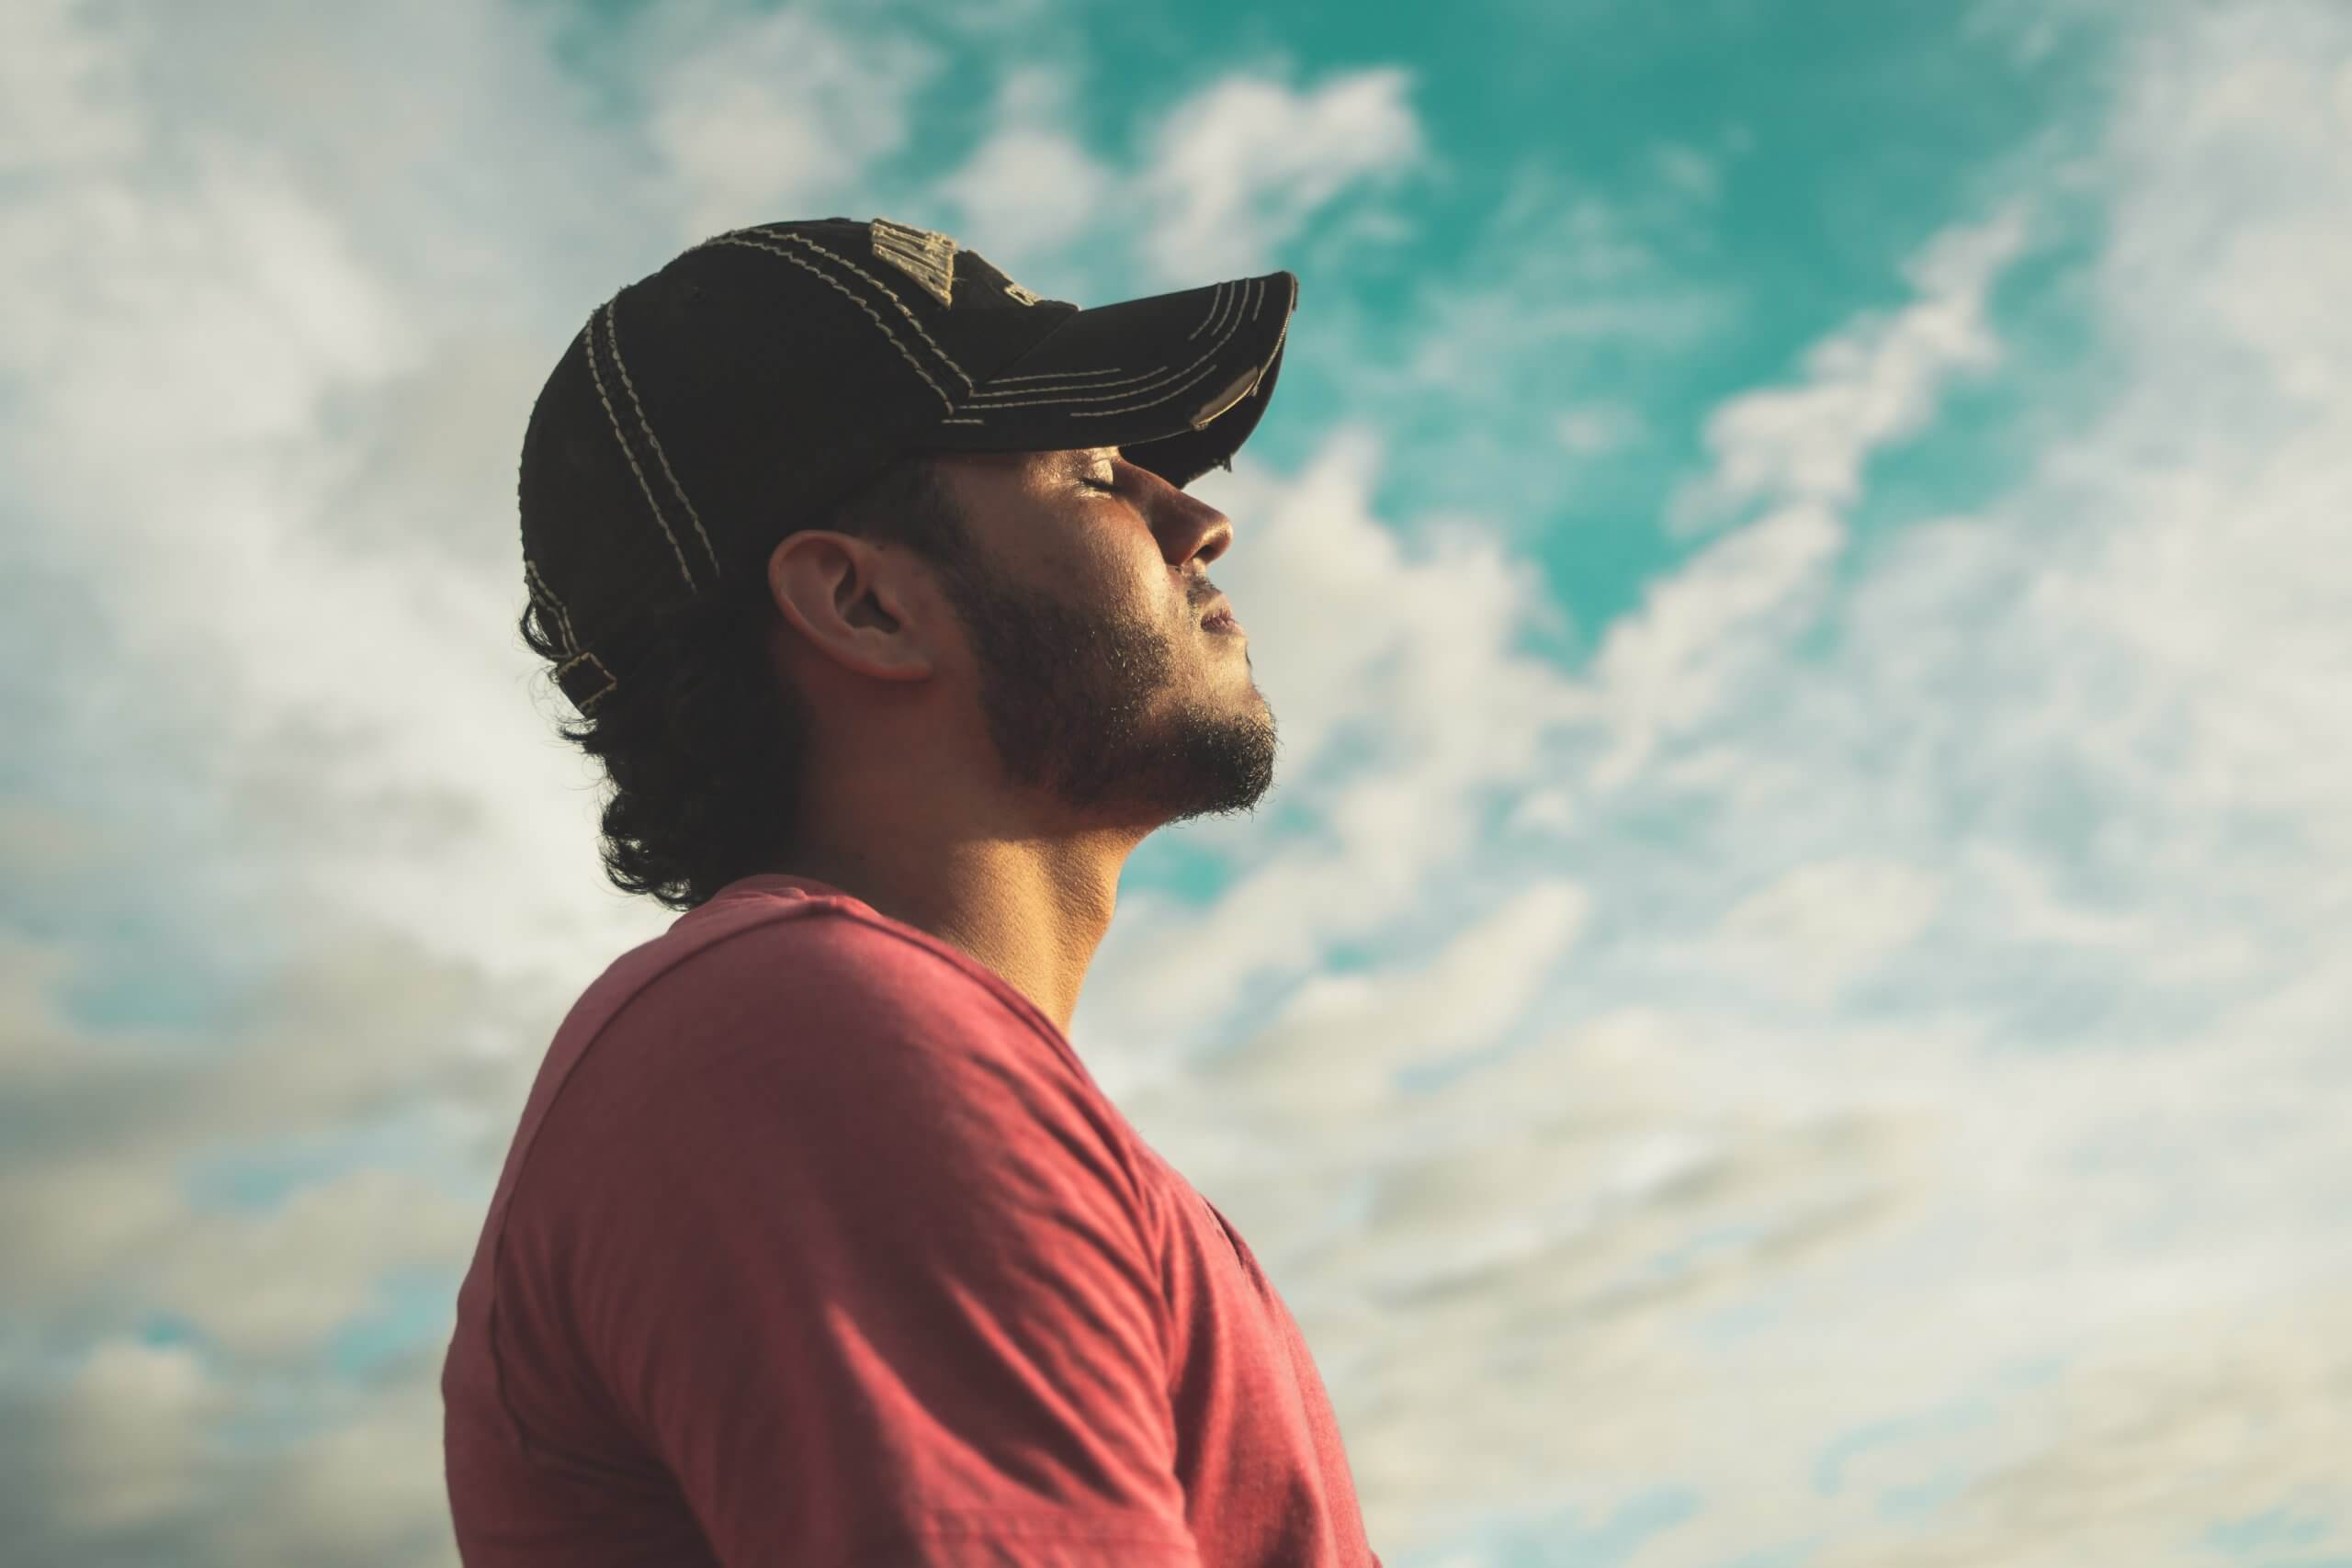 man-wearing-black-cap-with-eyes-closed-under-cloudy-sky-810775